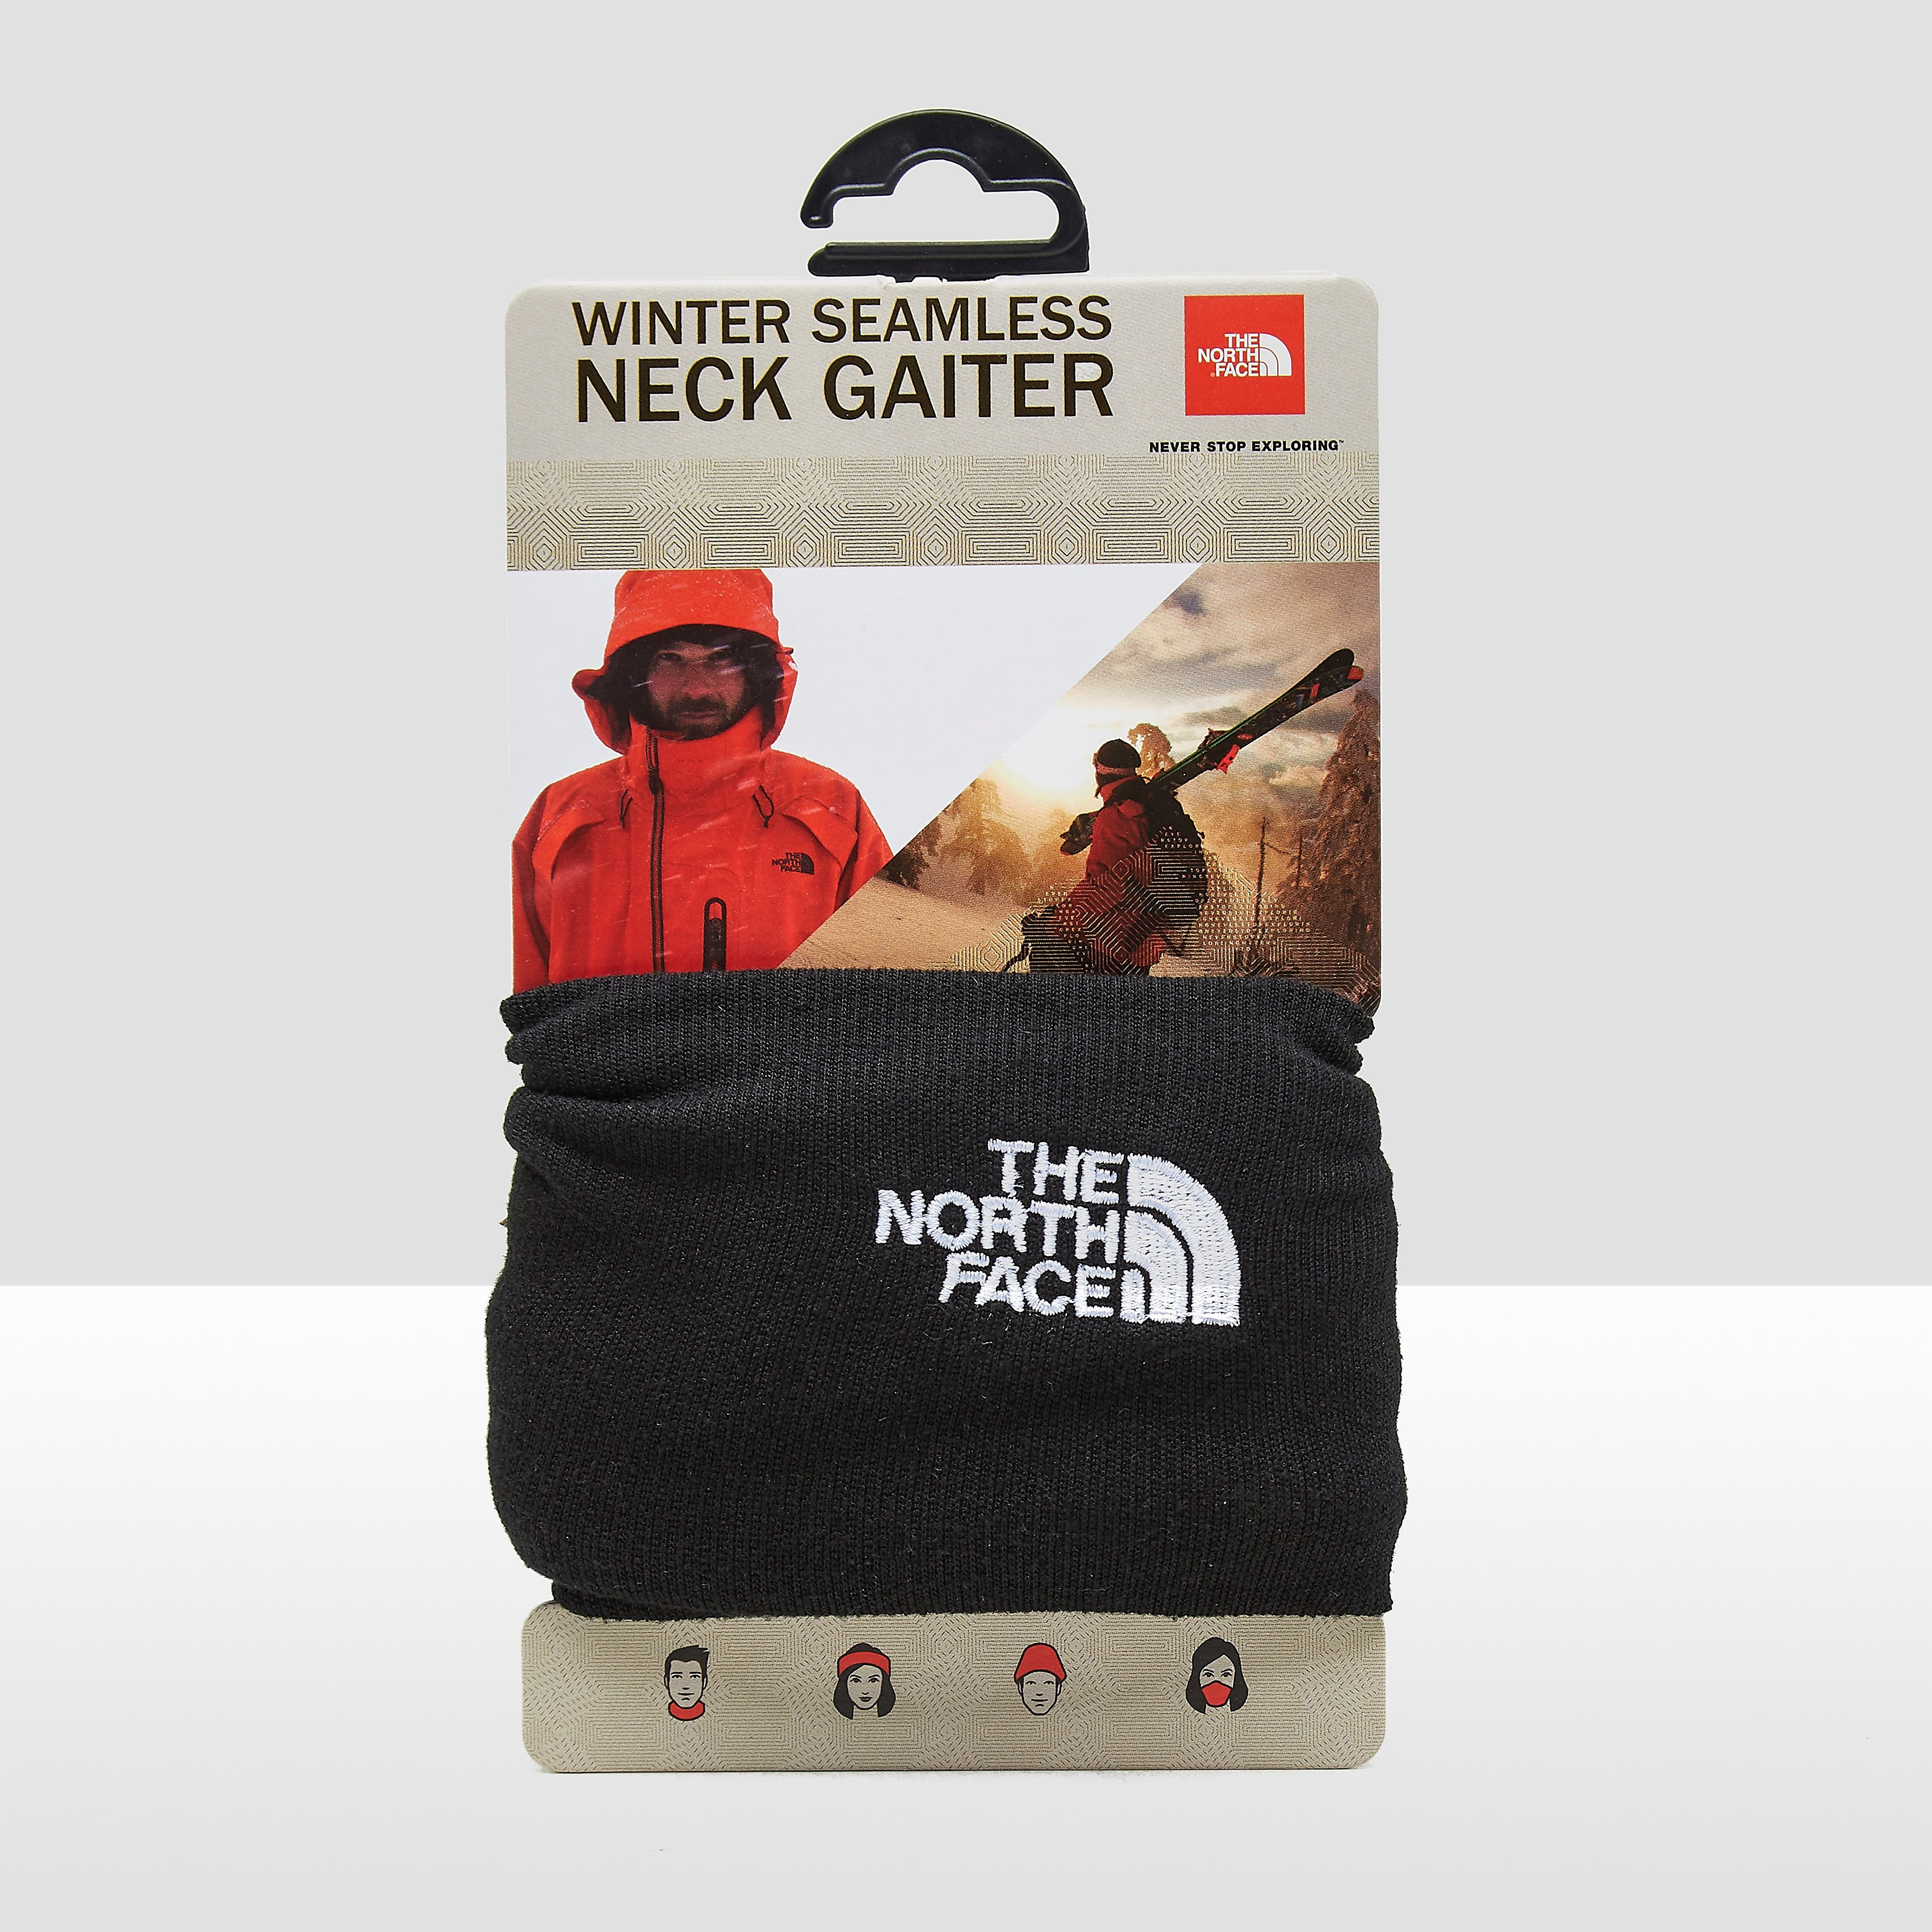 THE NORTH FACE WINTER SEAMLESS SJAAL ZWART